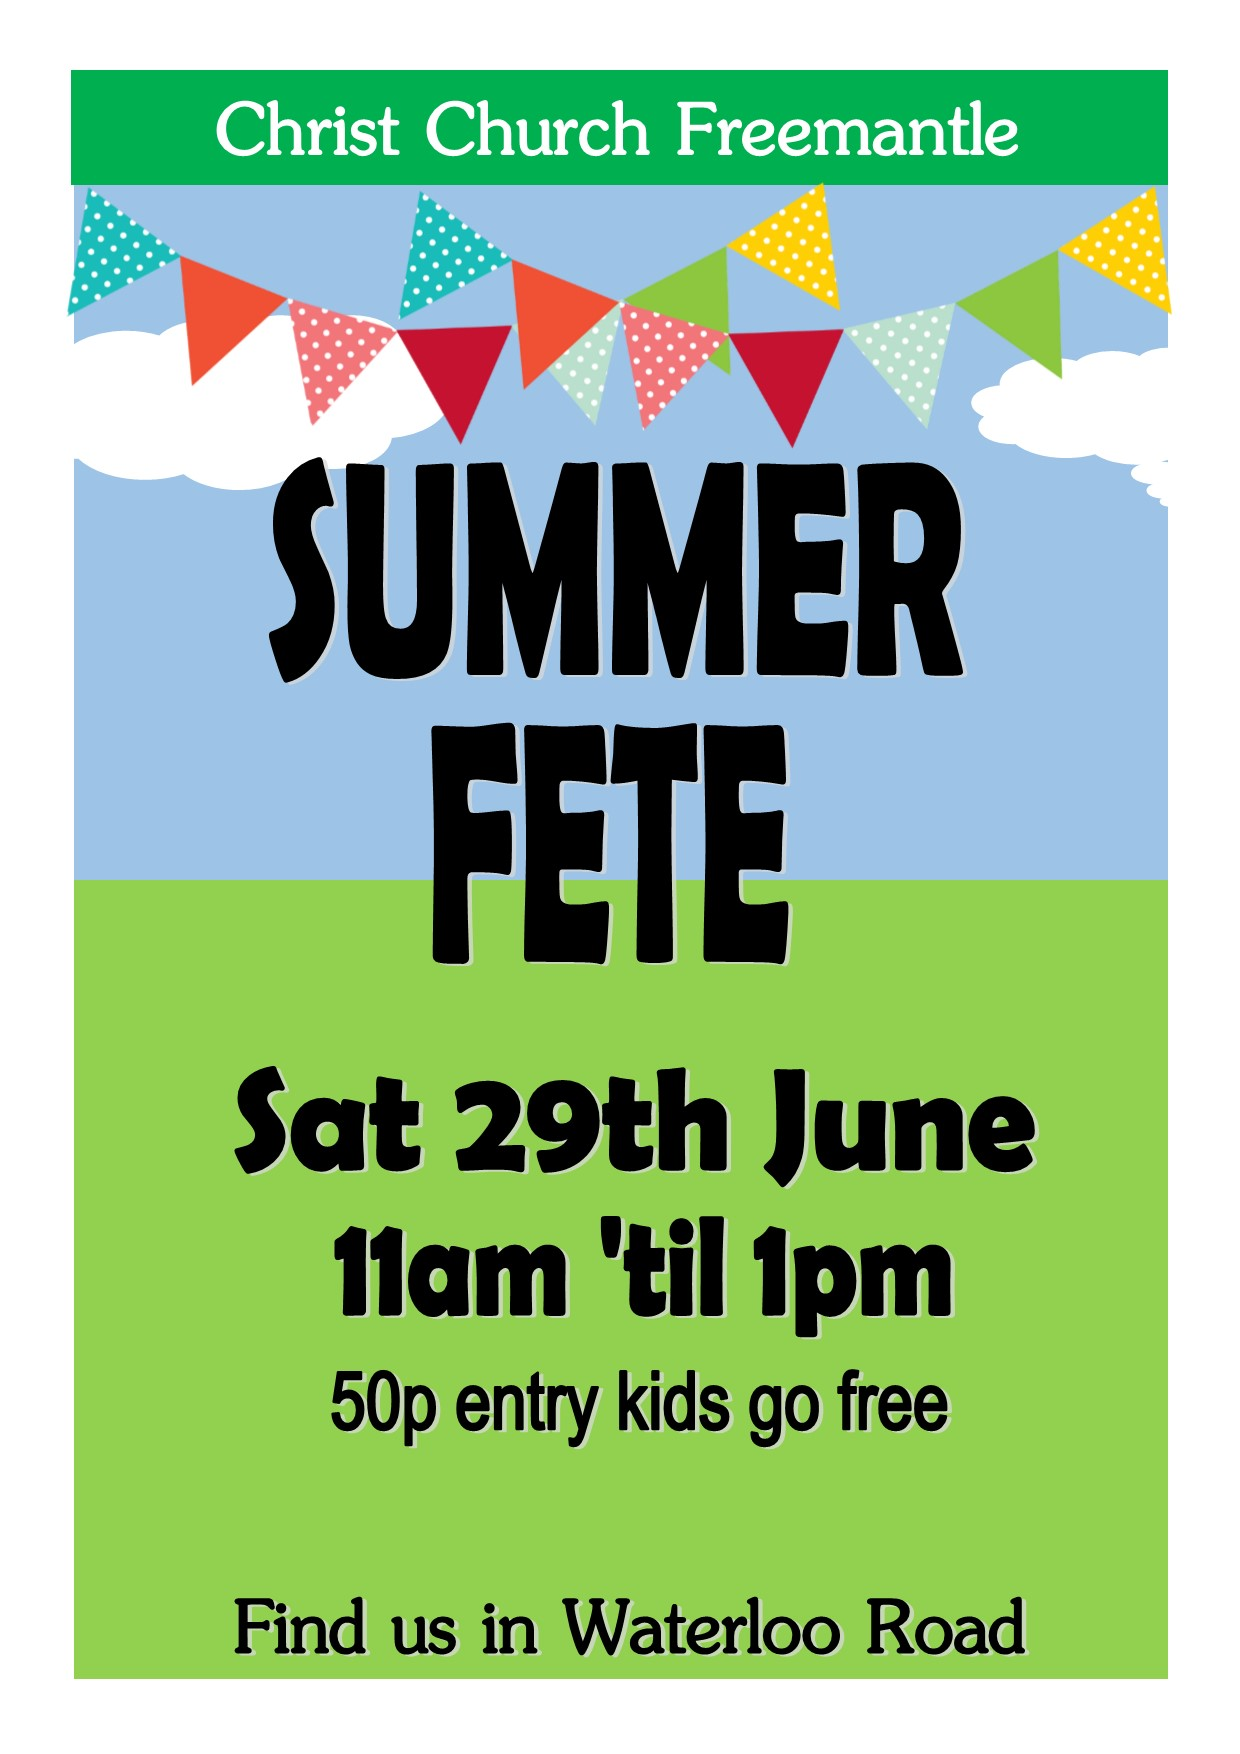 Freemantle Summer Fete